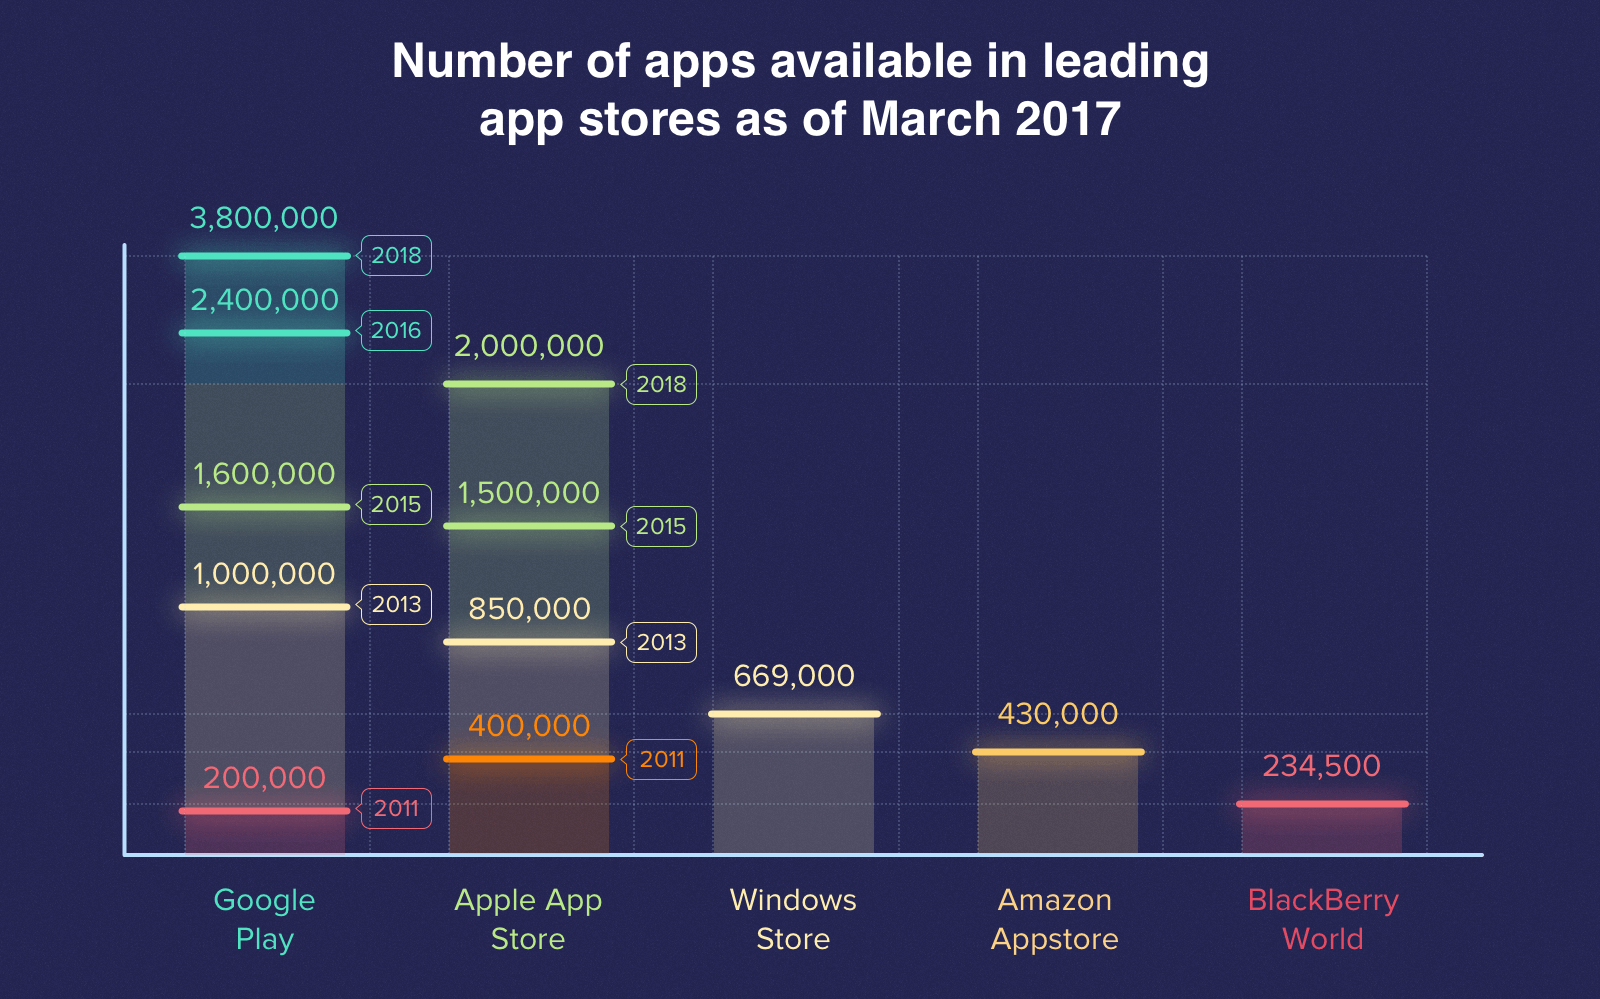 The biggest mobile app stores as of March 2017